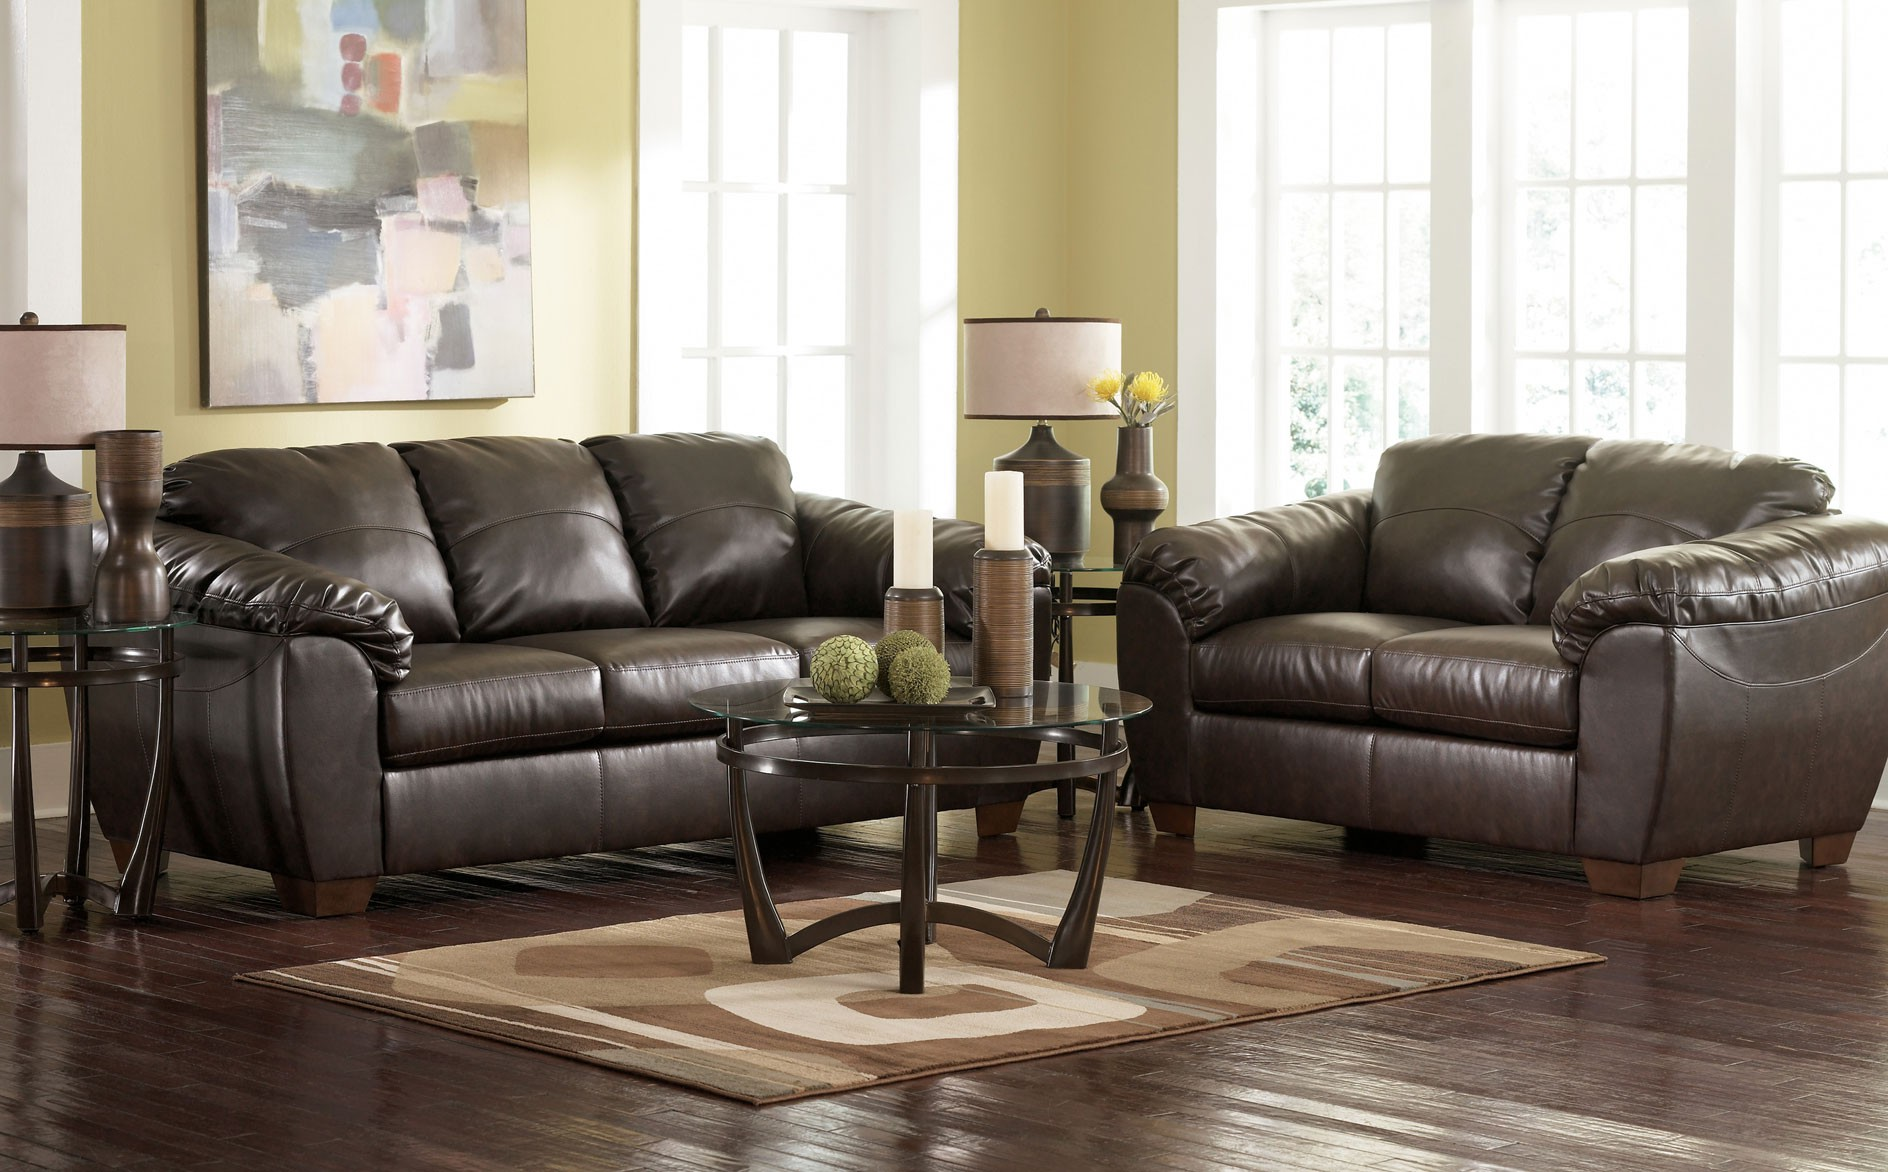 cheap living room sets under $500 09